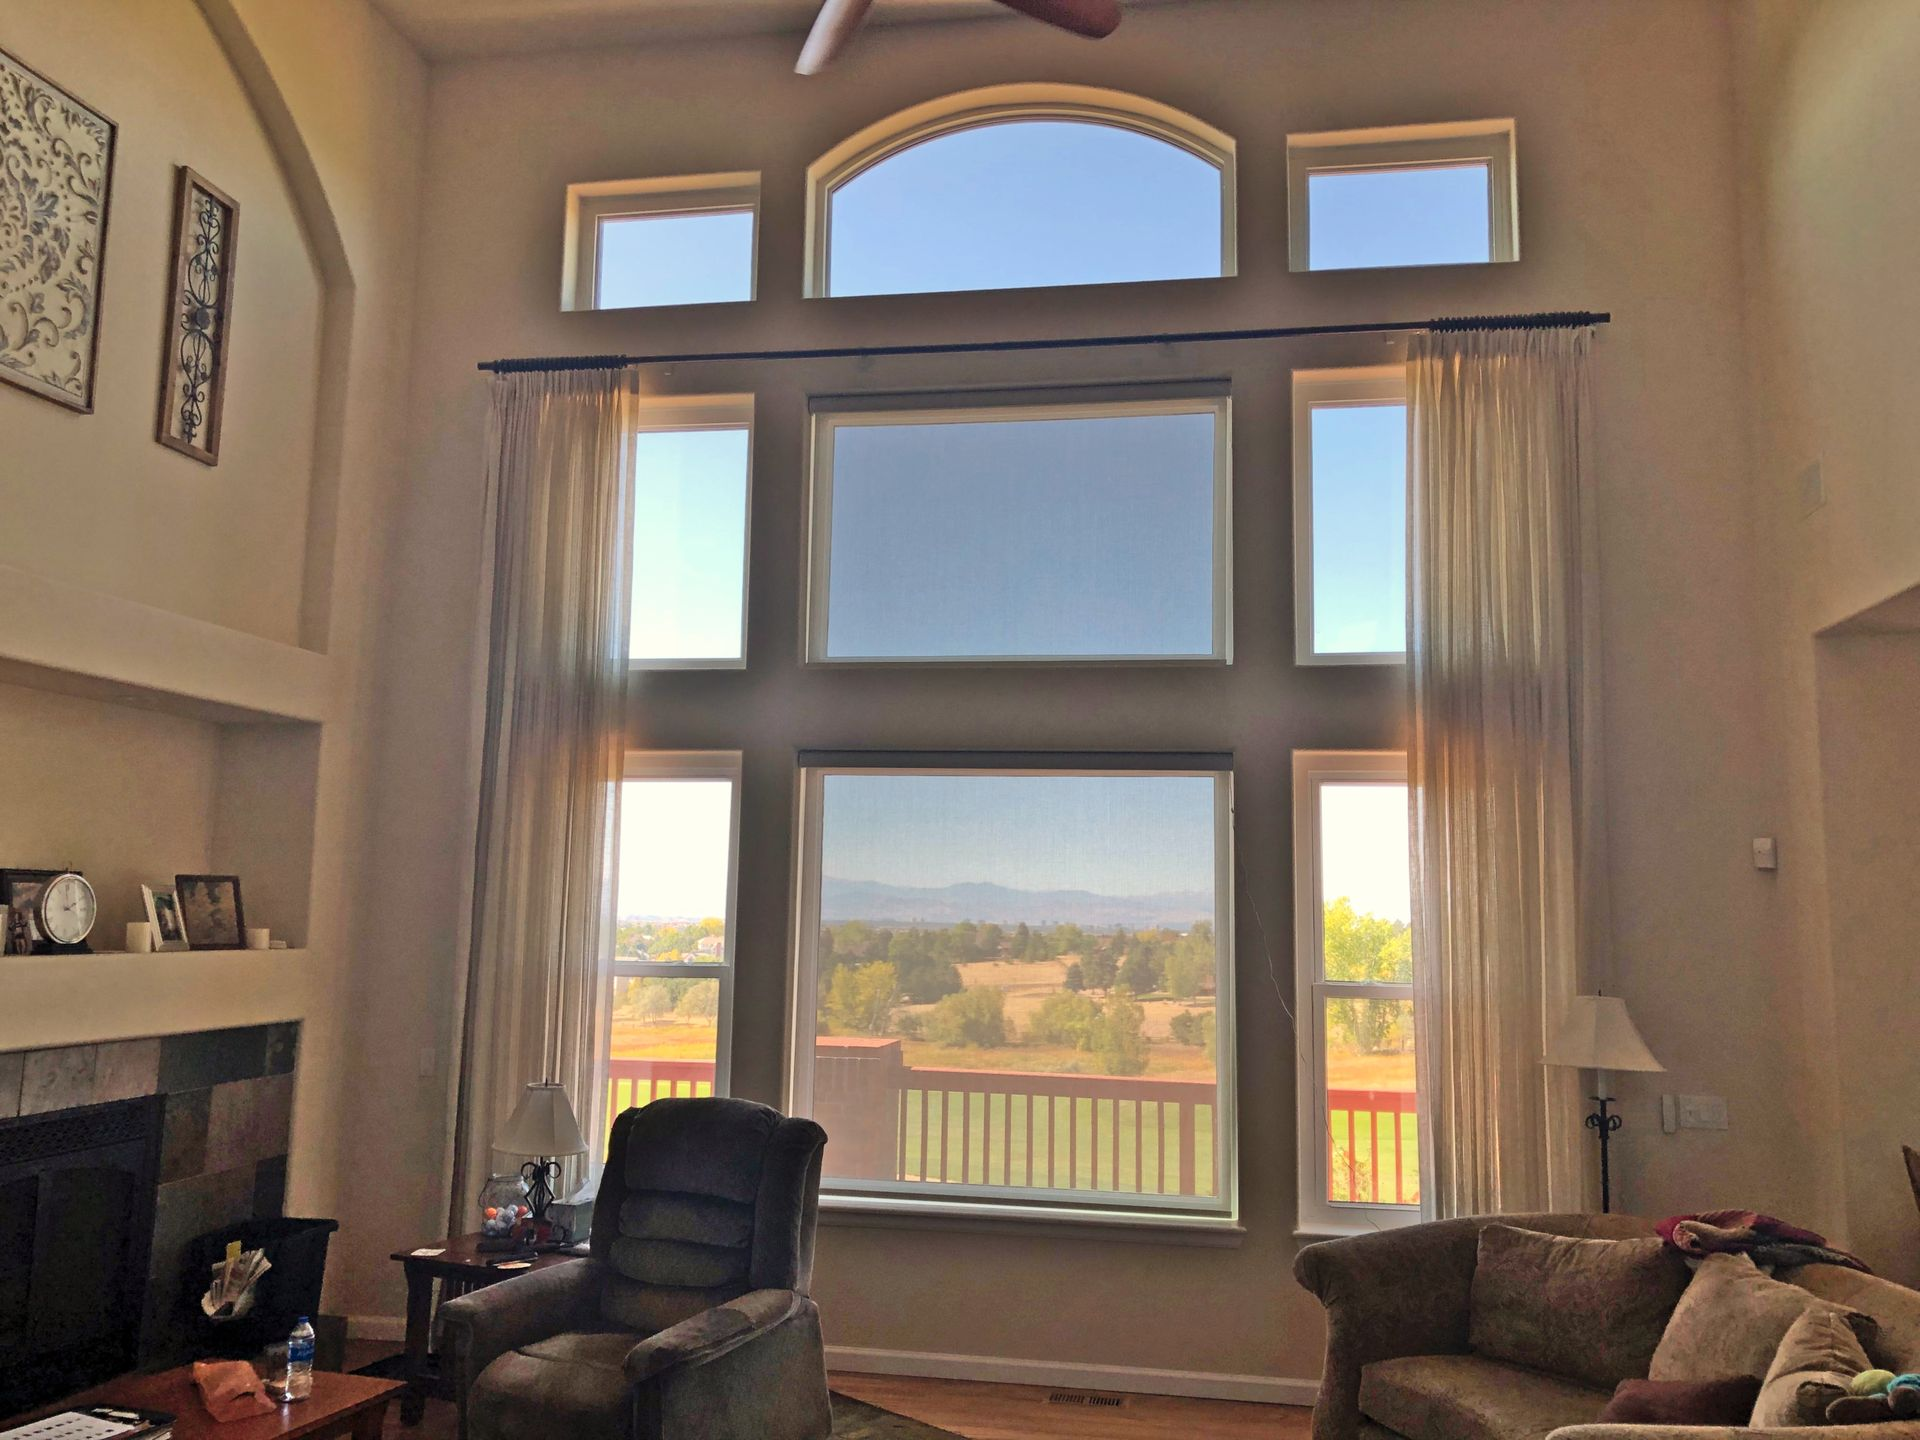 Enjoy Your Large Windows More With the Right Window Coverings ...